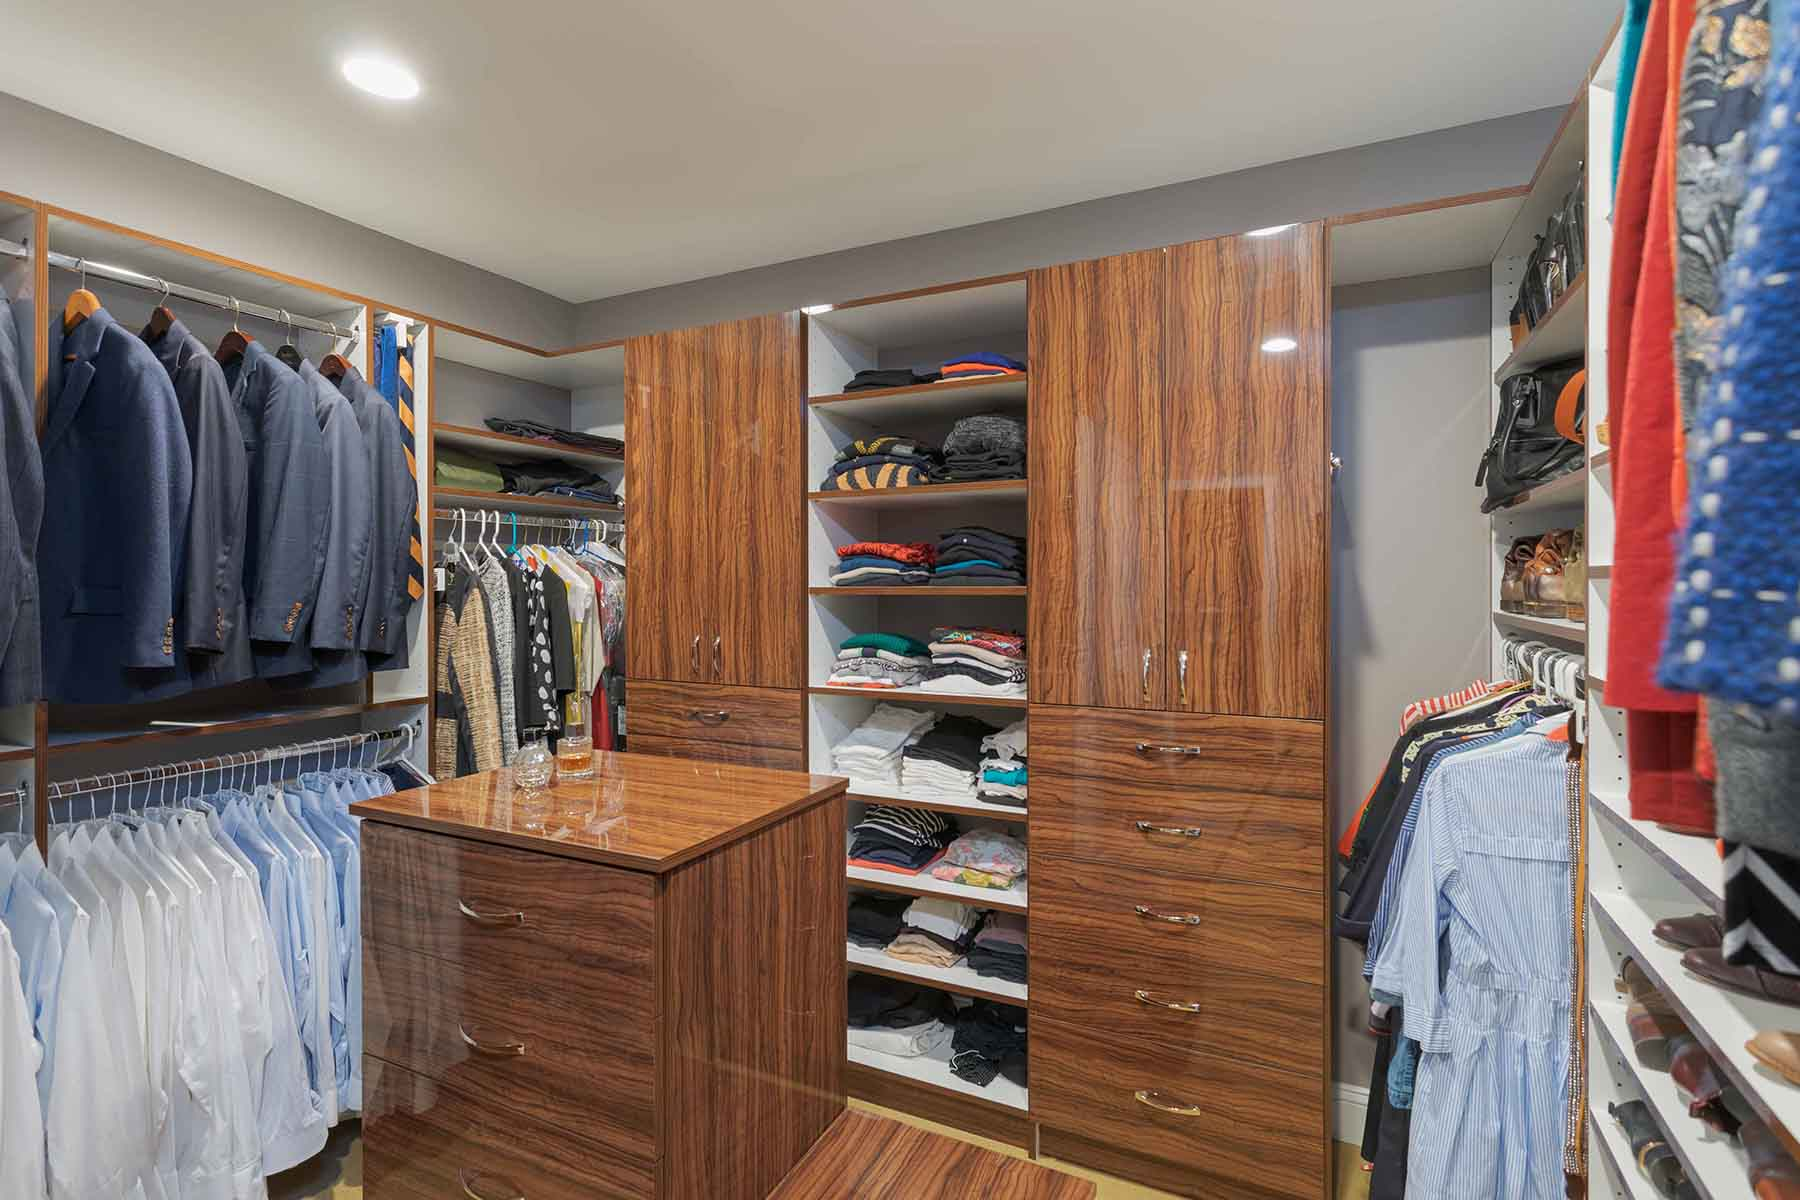 Walk-in closet with suits cared for and neatly hung